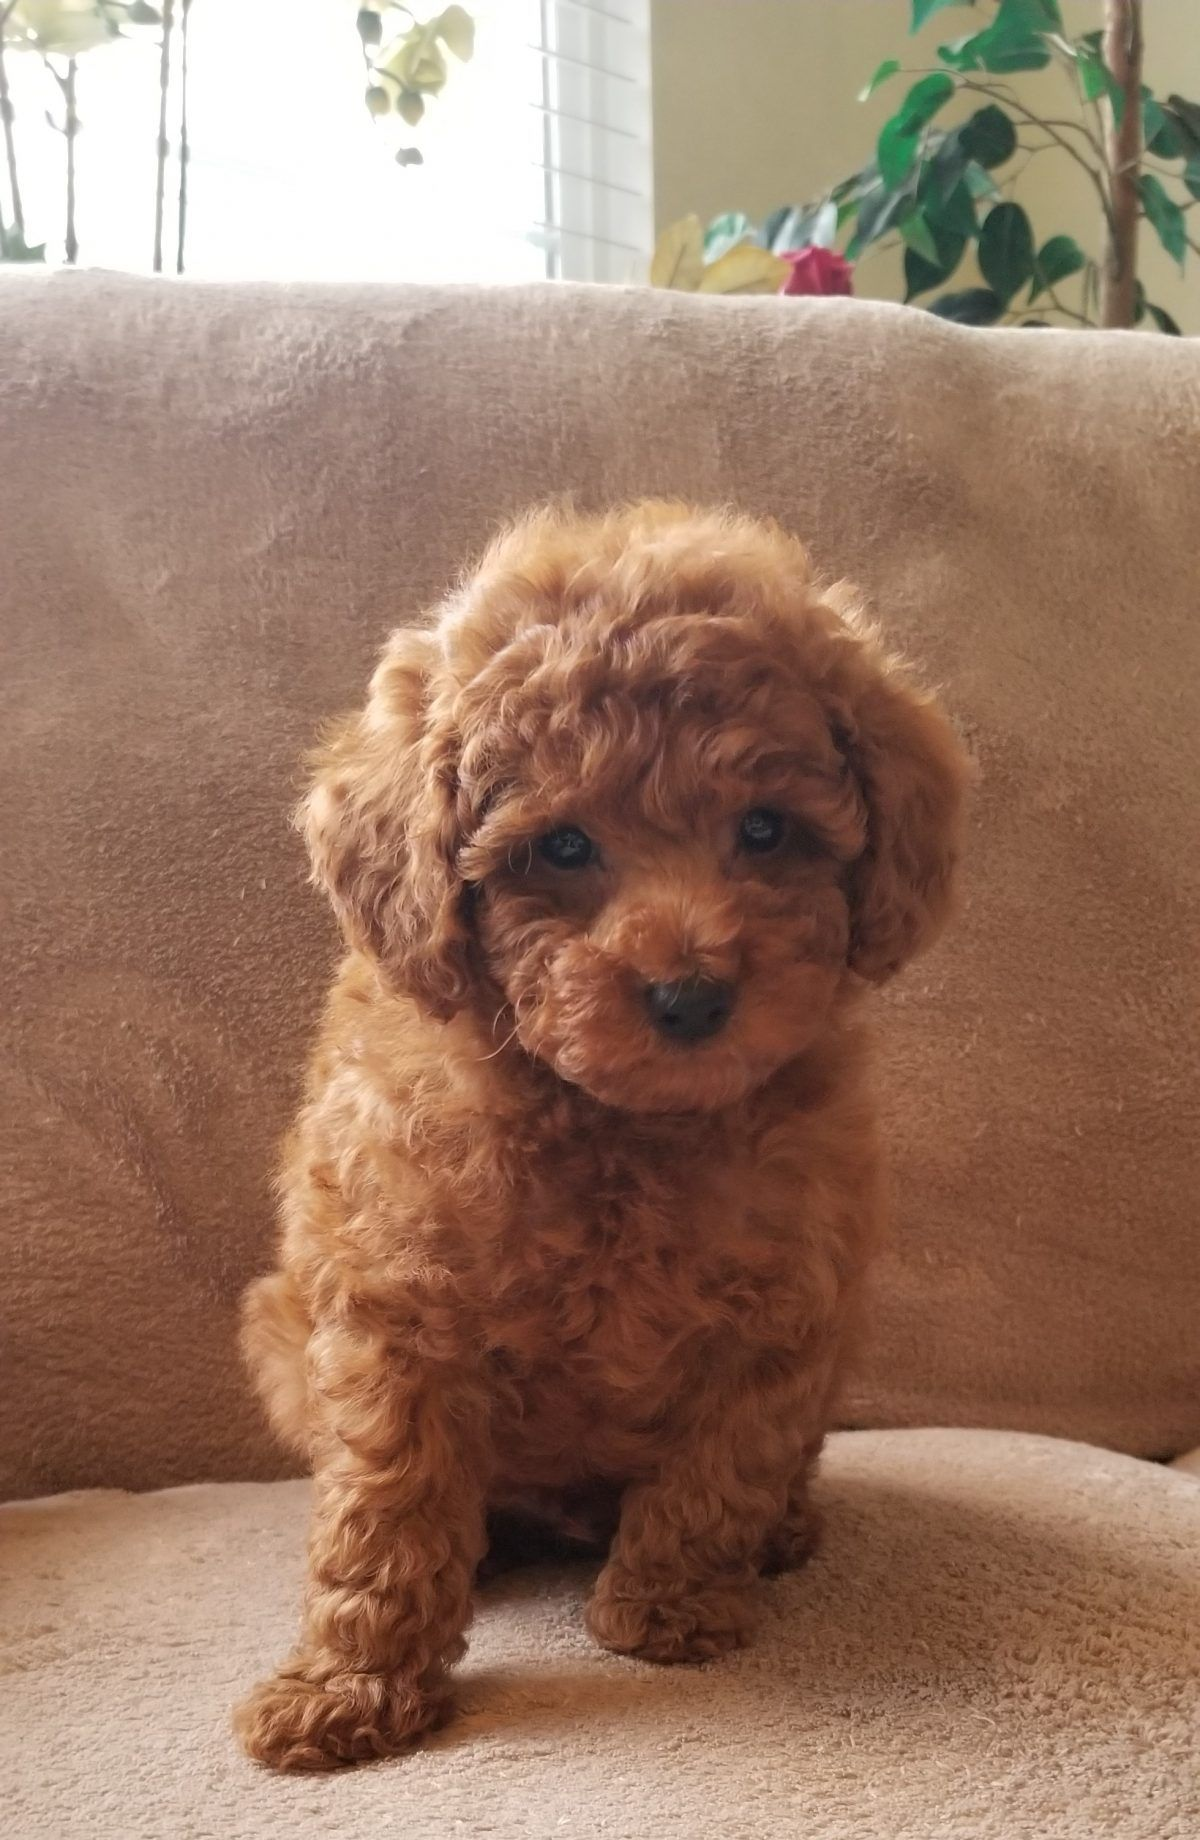 Tiger Male Akc Poodle Puppy For Sale In Oxnard California Meet